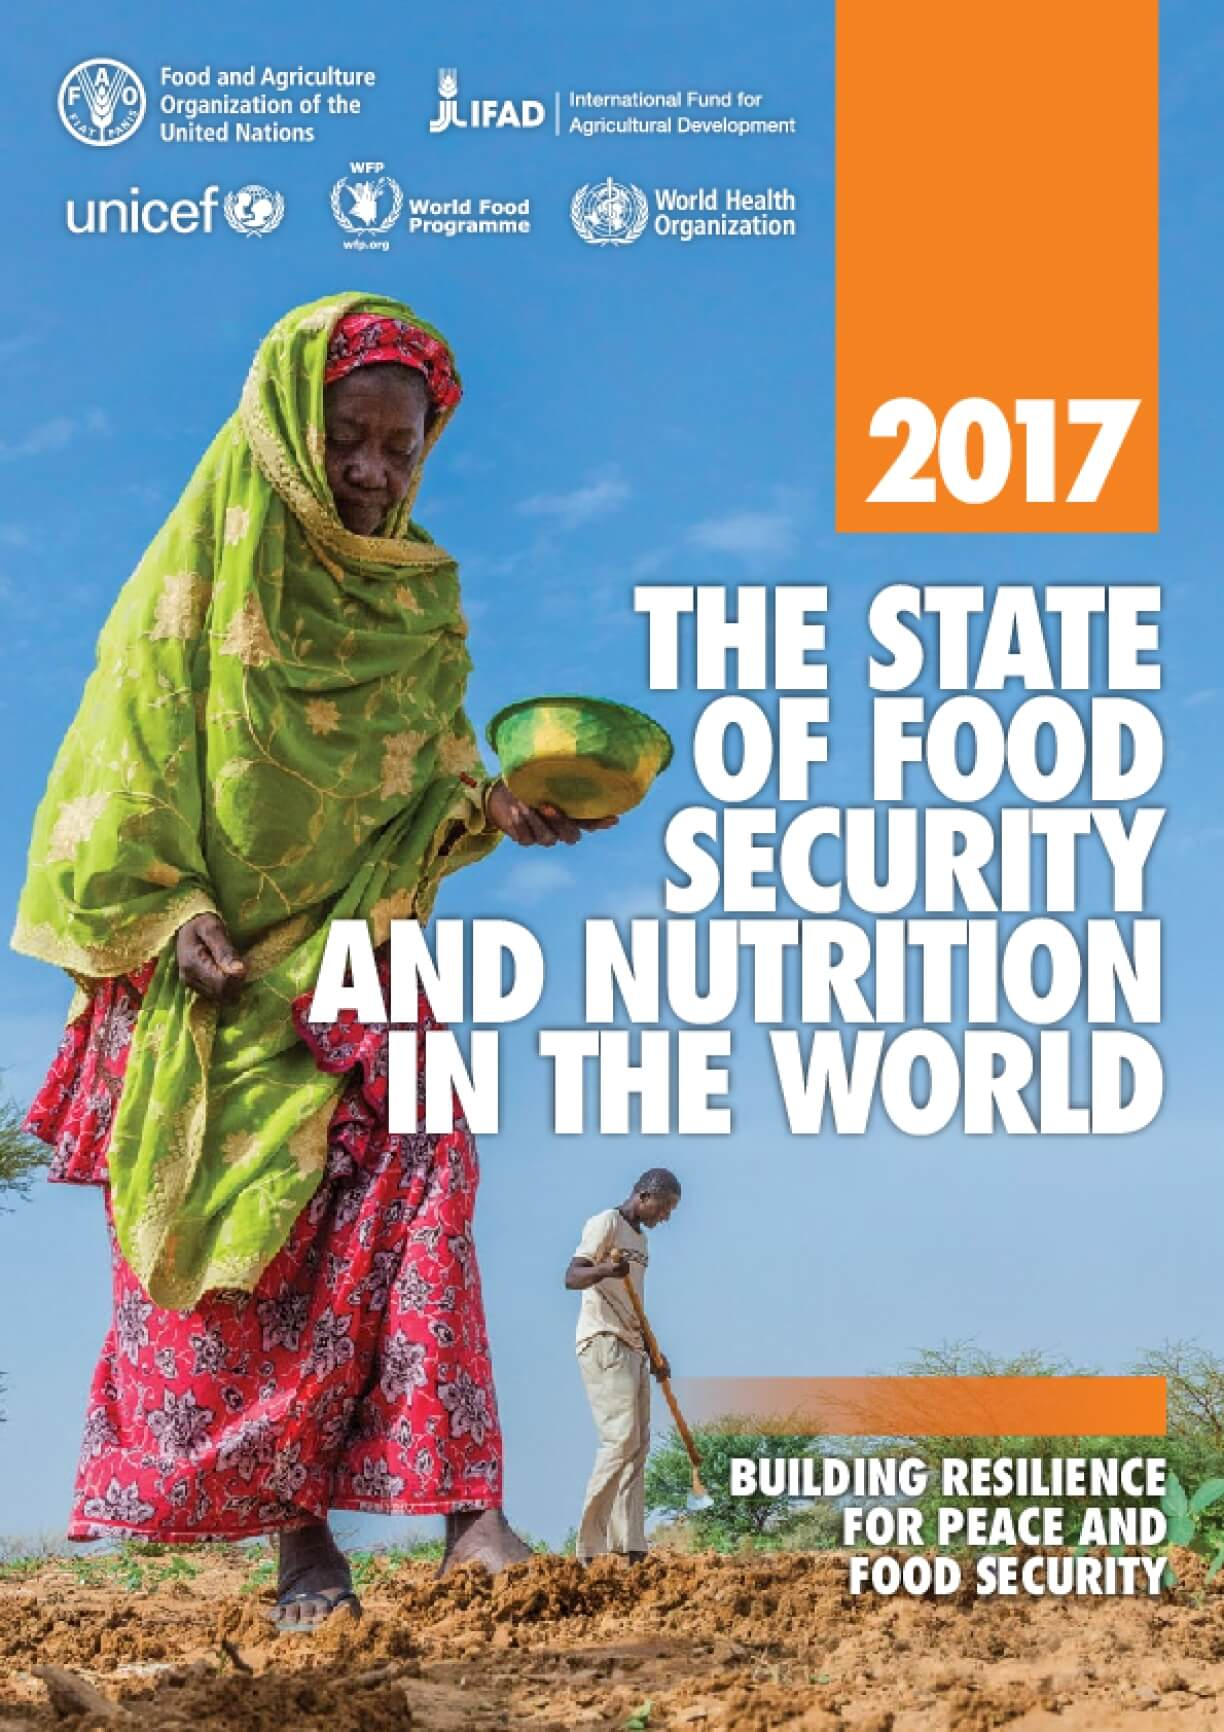 The State of Food Security and Nutrition in the World